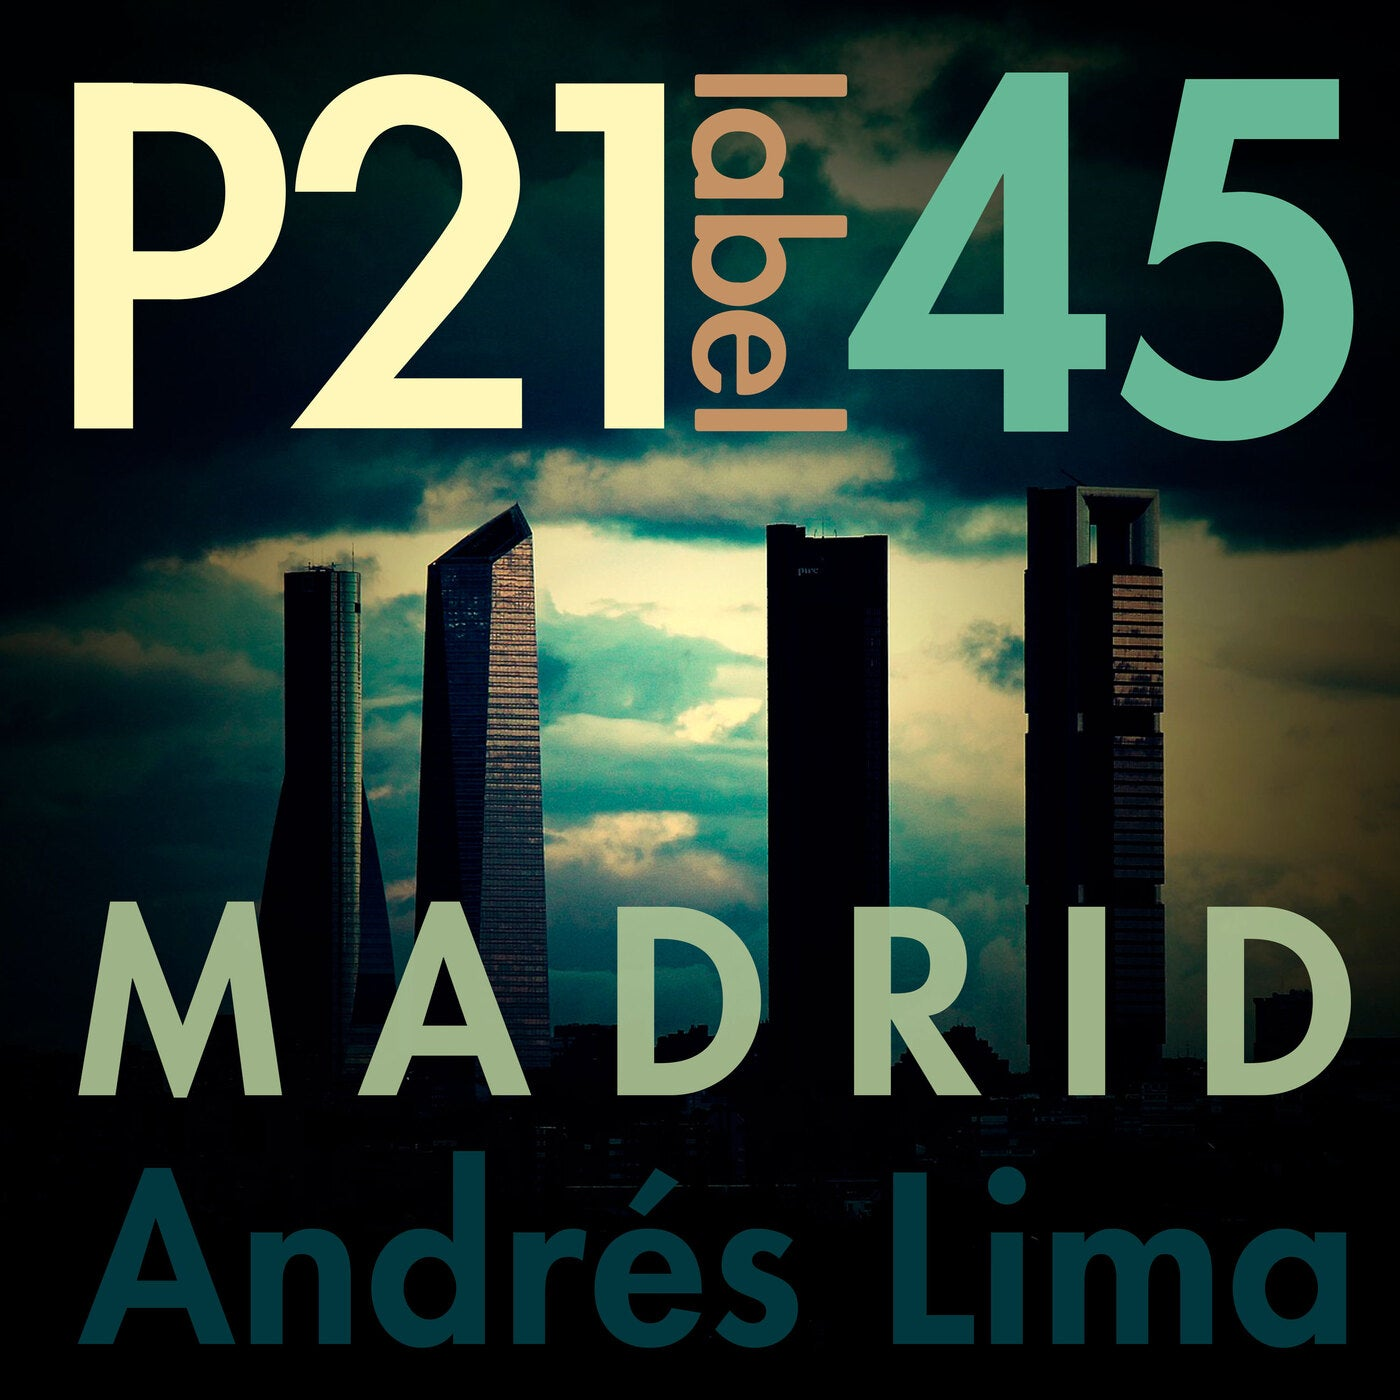 Andres Lima - Madrid (2021)